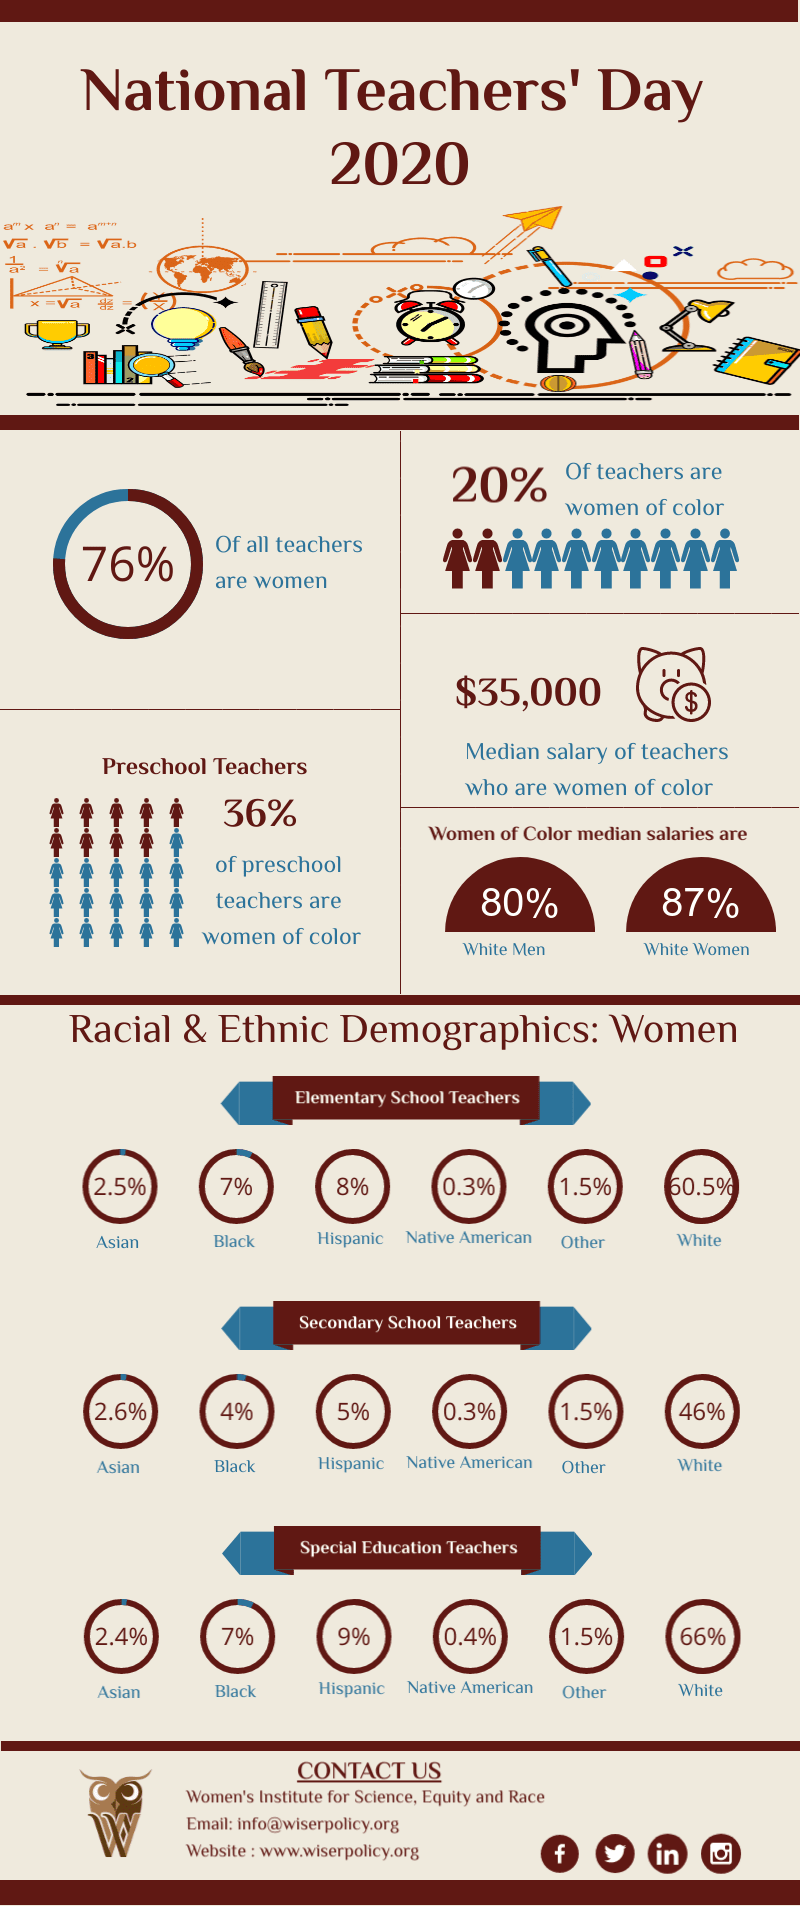 National Teacher's Day 2020 | Racial & Ethnic Demographics: Women